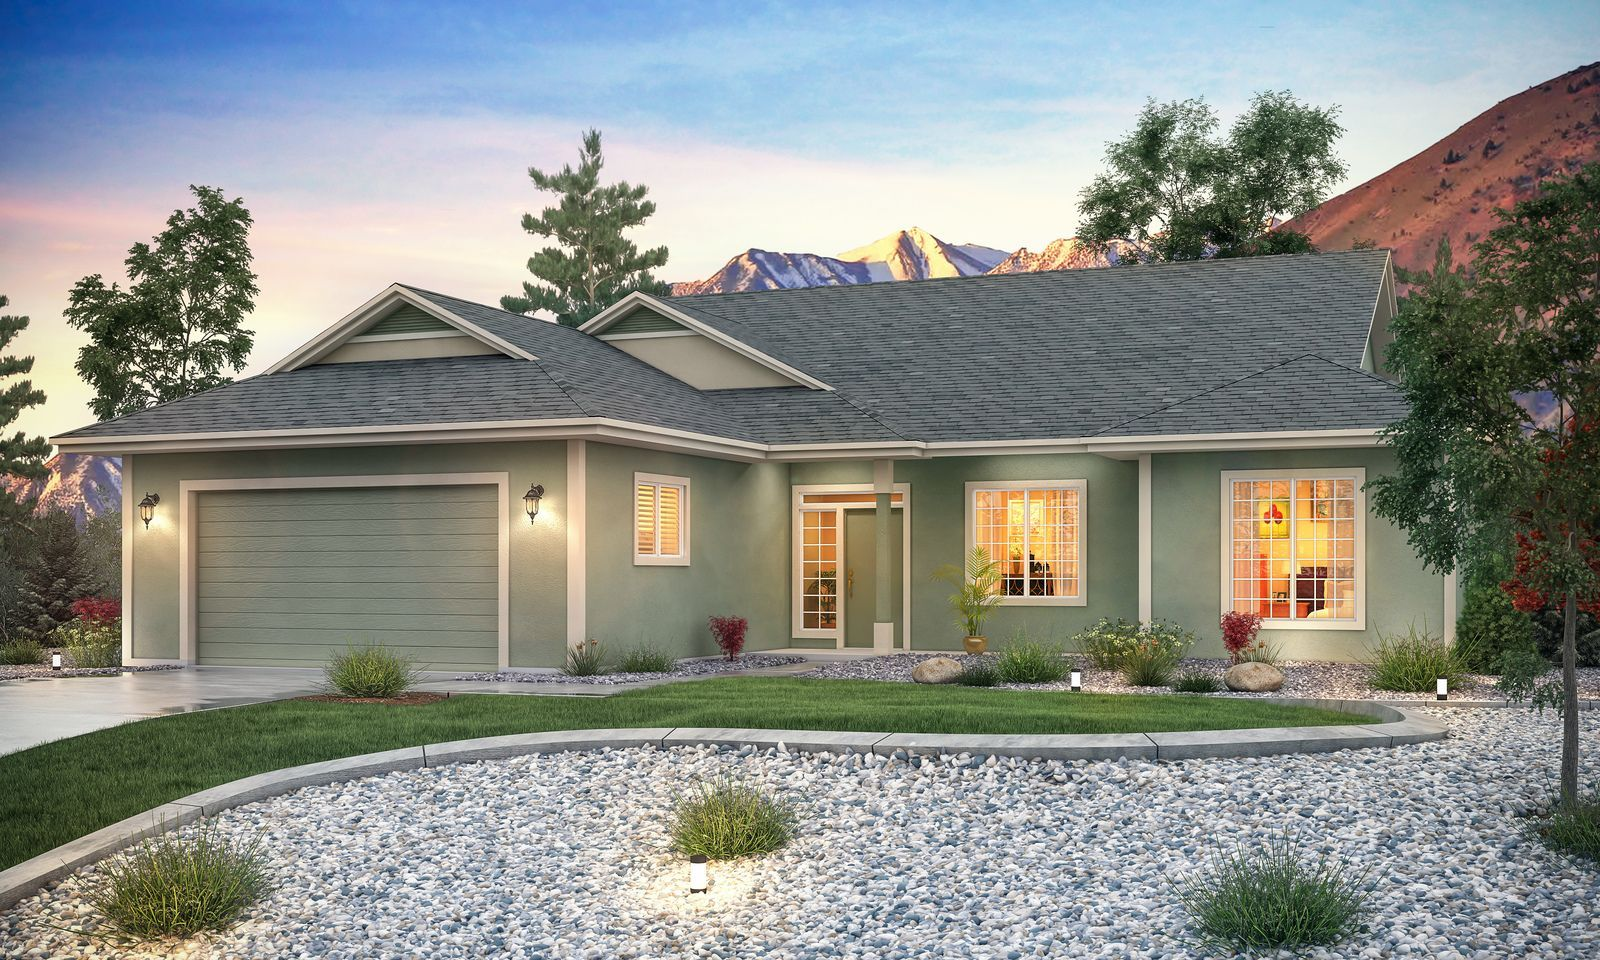 Single Family for Active at Cottages At Carson Valley By Carter Hill - Residence 2 - 1950 Plan 1227 West Cottage Loop Gardnerville, Nevada 89460 United States